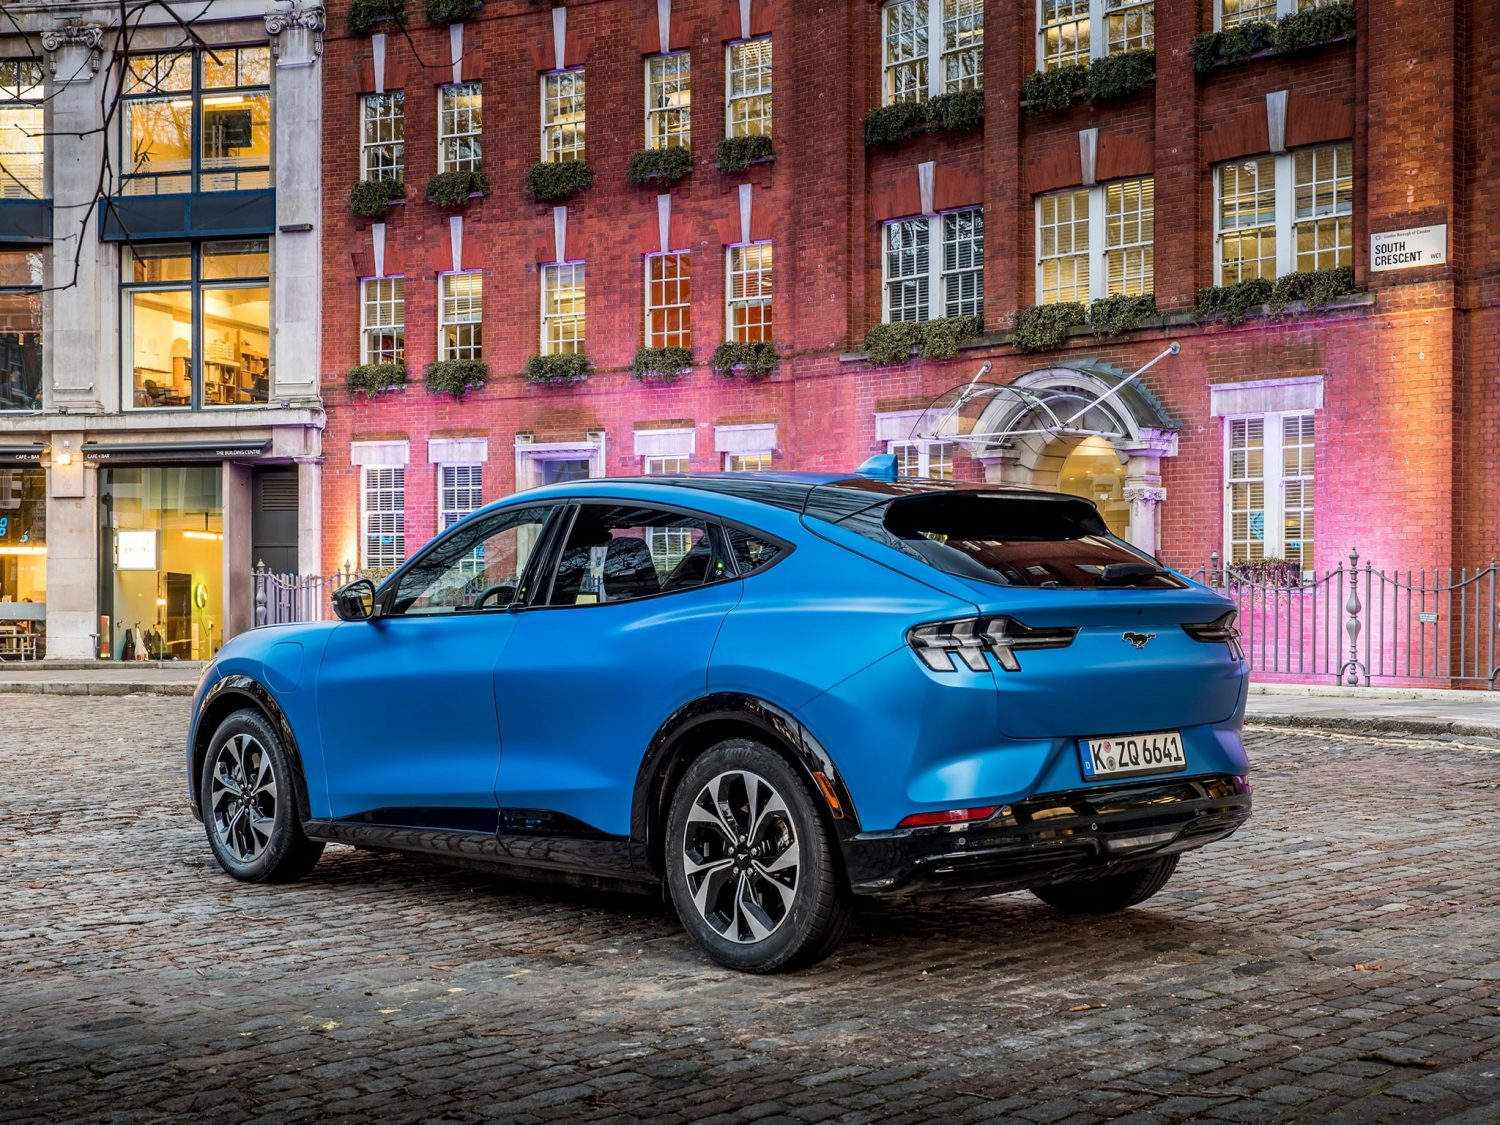 FORD_2020_Mustang_MACH-E